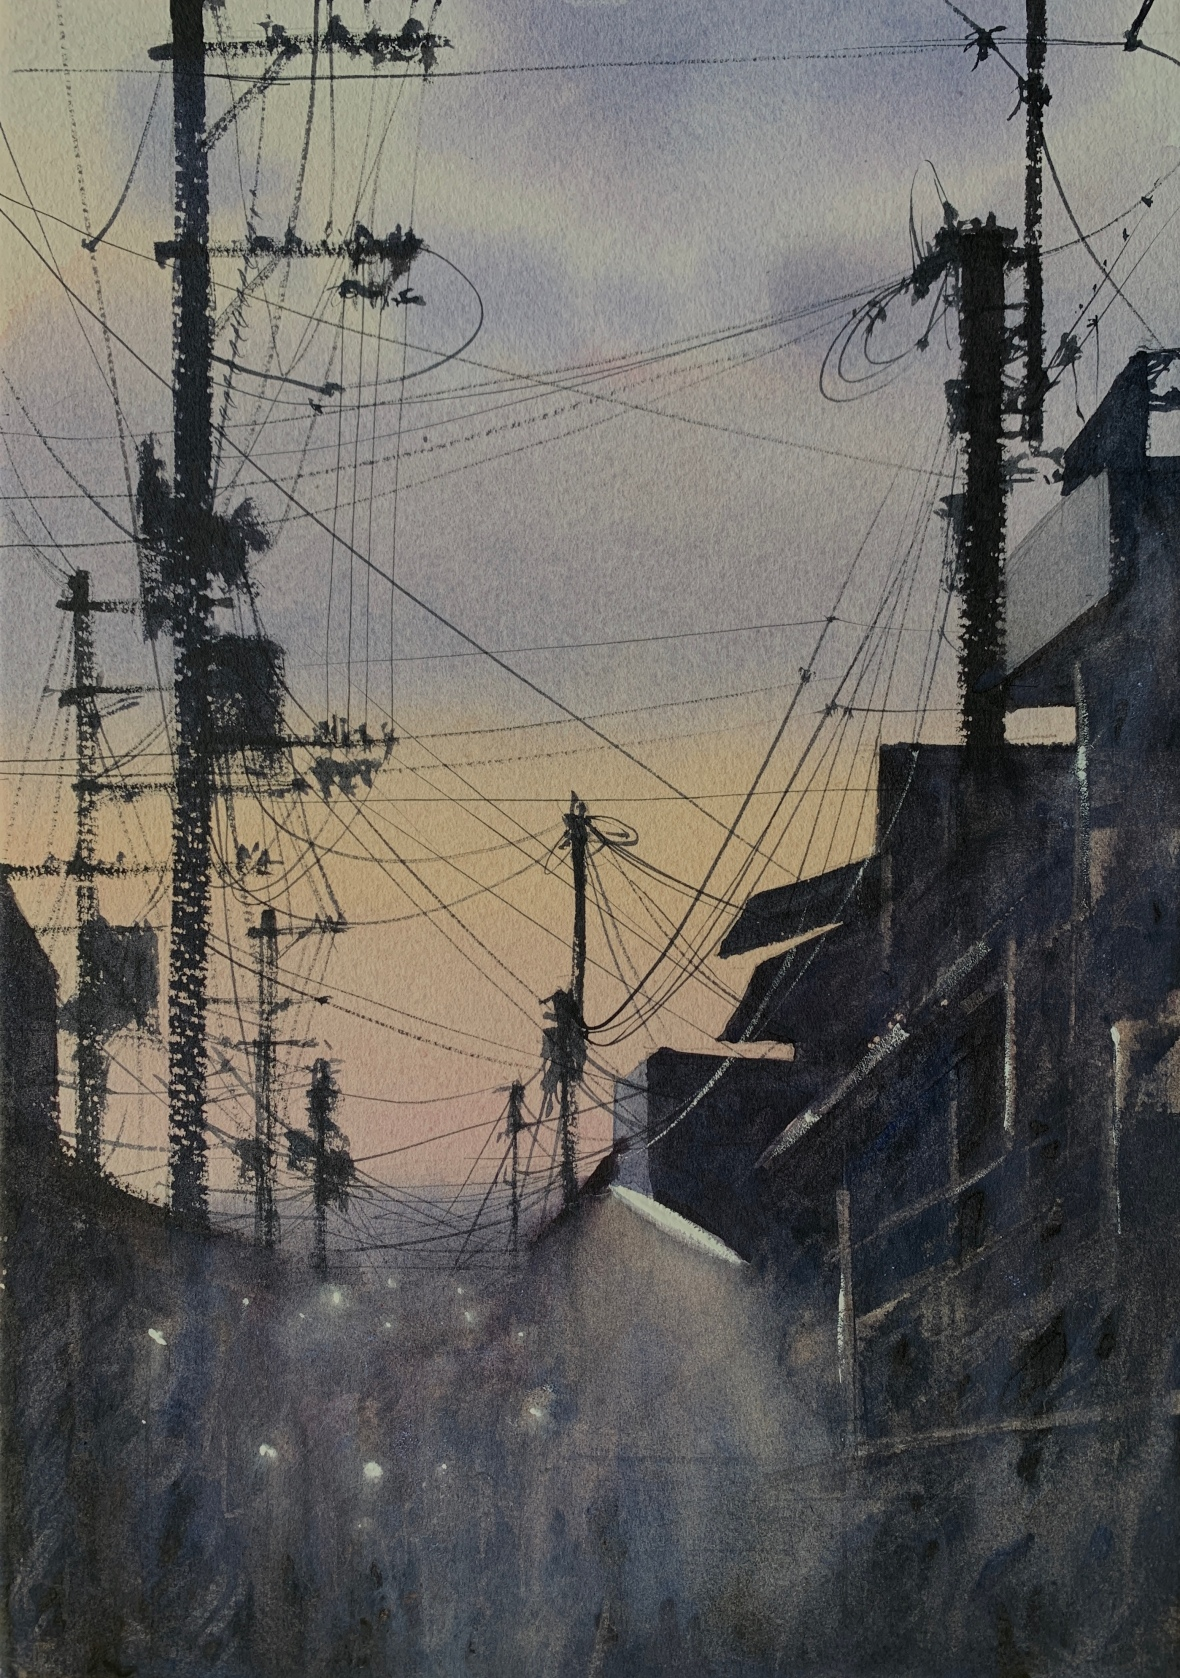 Watercolour painting of telegraph poles and wires silhouetted against a twilight sky